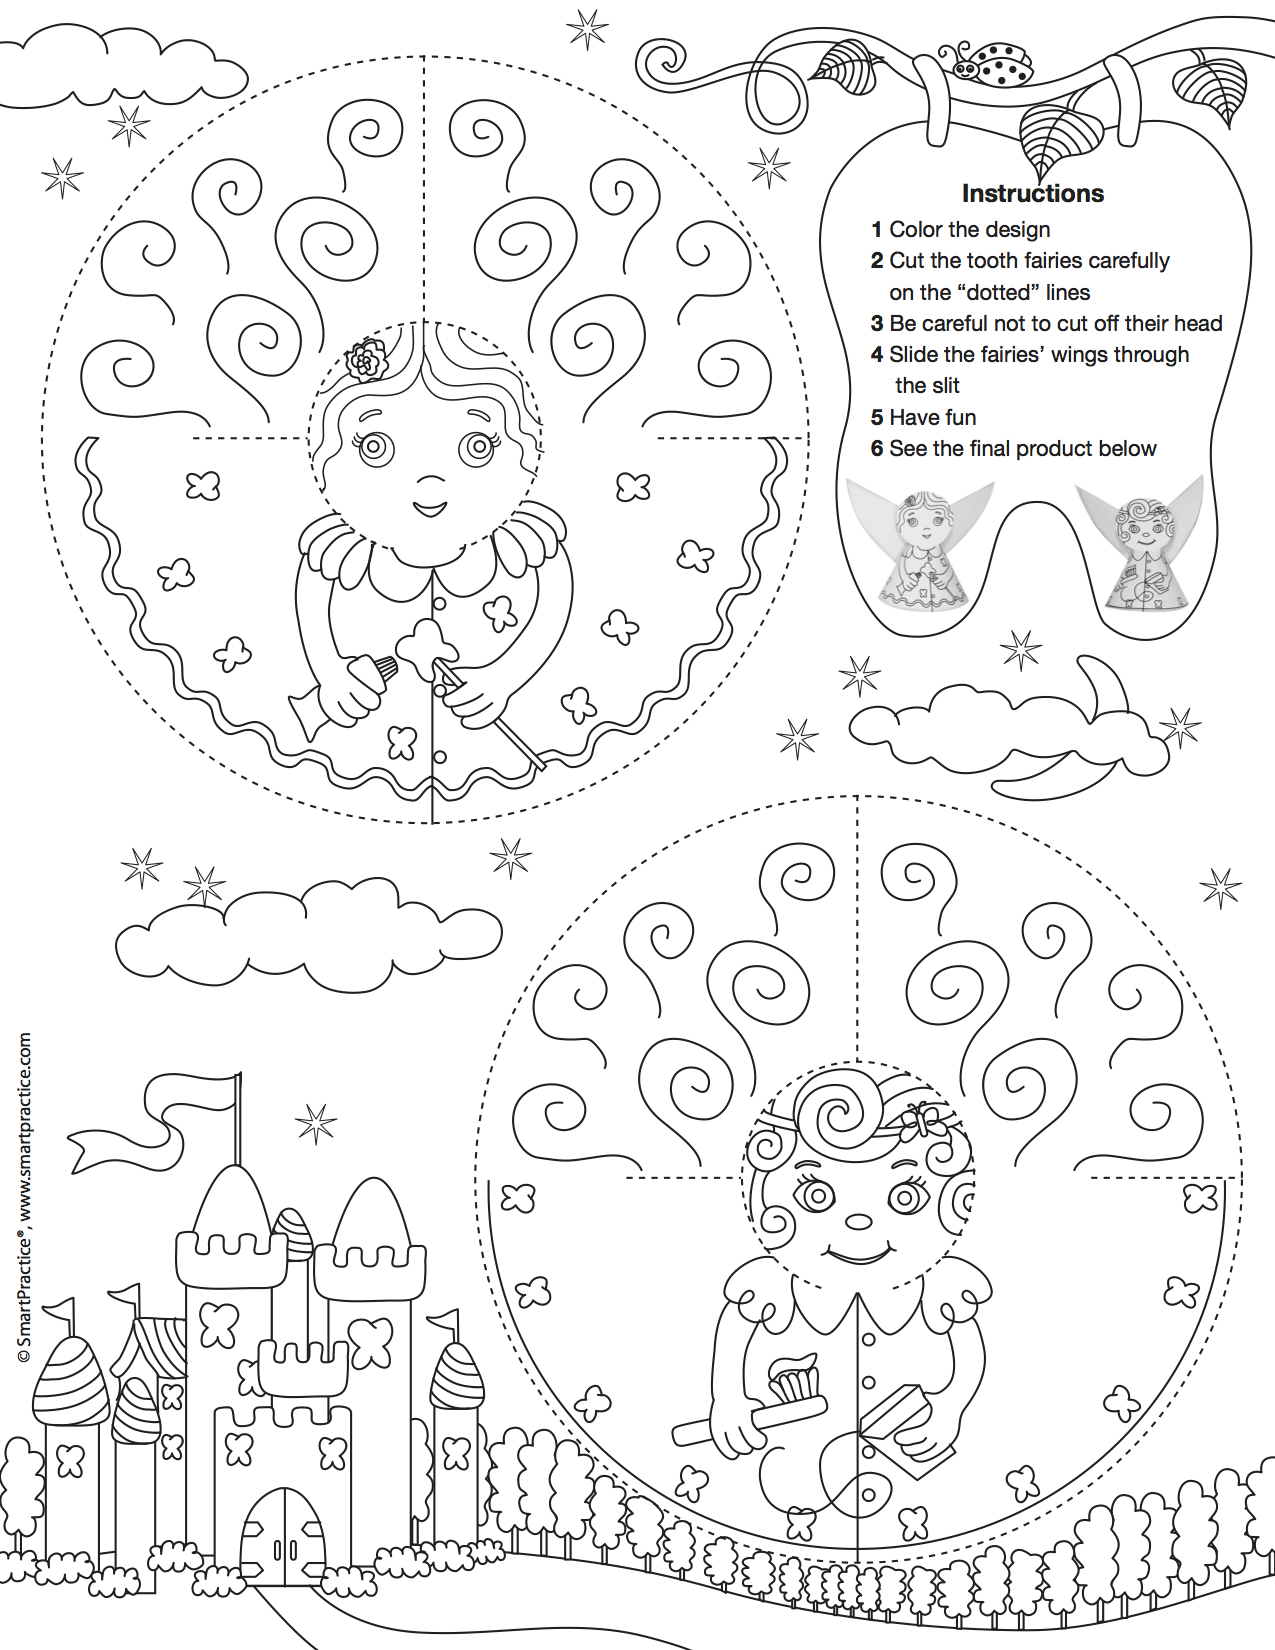 ToothFairyColoringSheet Web